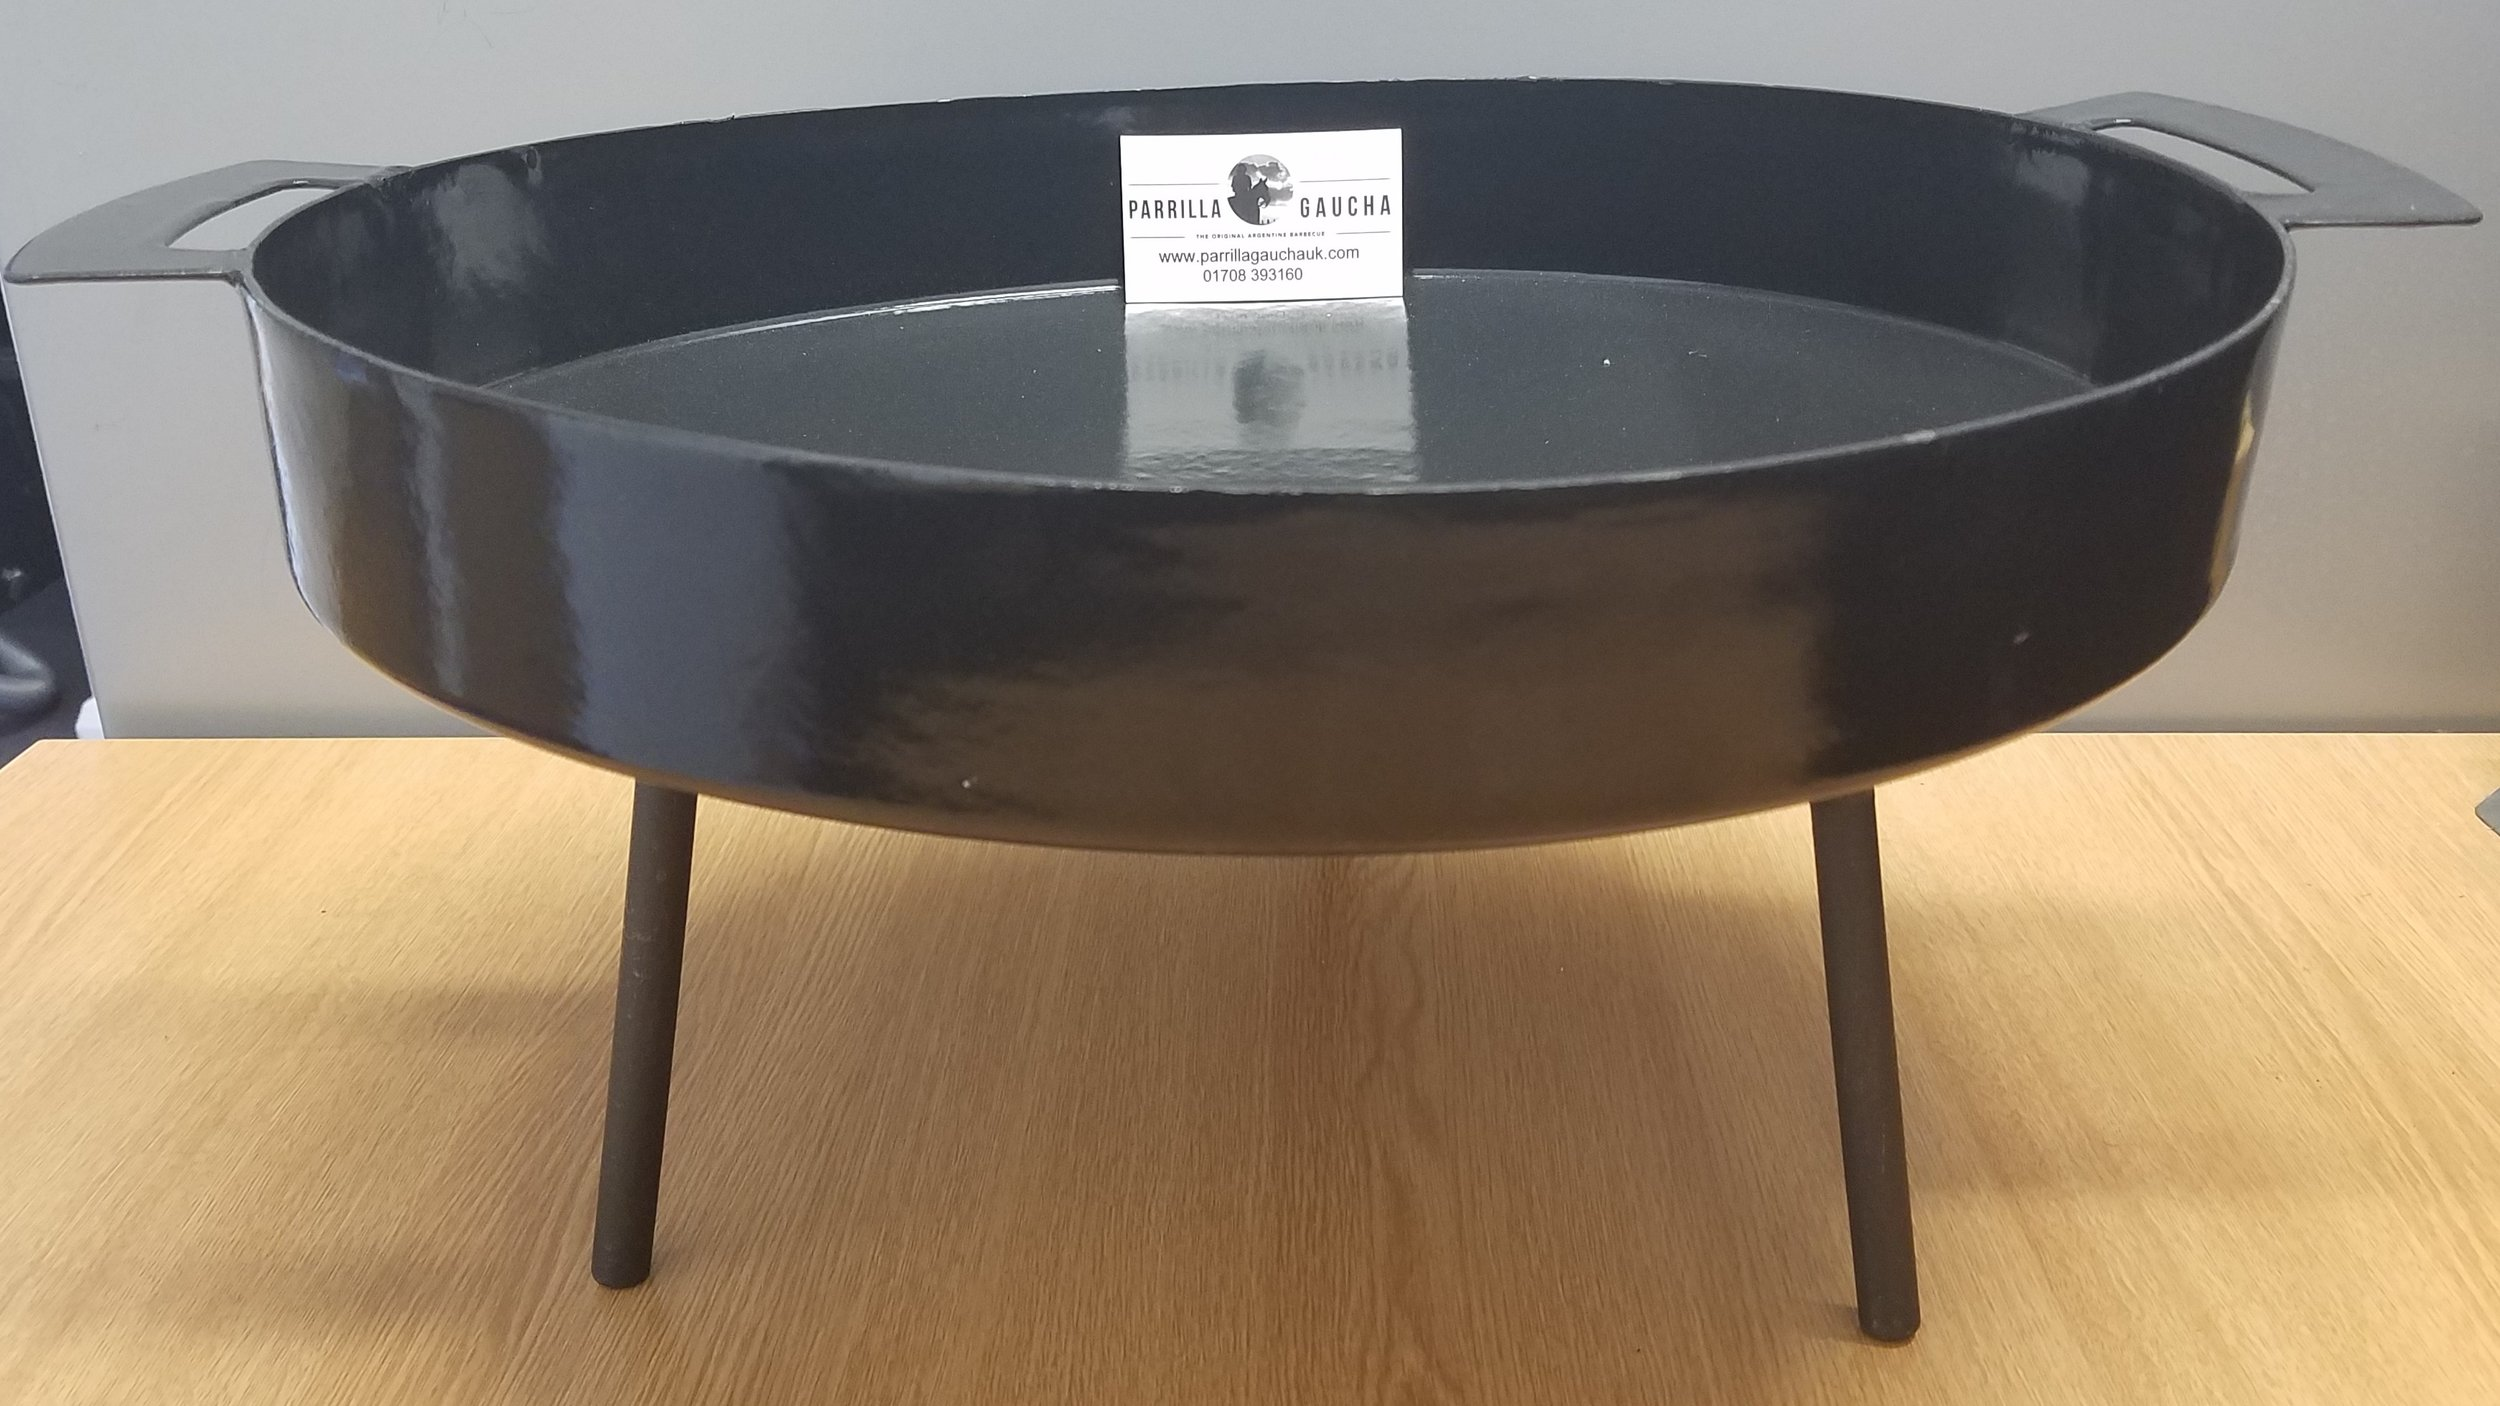 Disco Tromen £155.00 - DescriptionHigh: 22,5 cmDiameter 42 cmMaterial: enamelled iron coated 0,16 cm thickThis enamelled coated disco is ideal to use over coals, open fire, on a grill, and even inside on their stove top. The cooking experience is hands-on and involves moving food from the hot center to the cooler edges. When cooking for the 1st time, we recommend you lightly coat the entire cooking surface with vegetable oil, use a medium heat, and just start cooking!